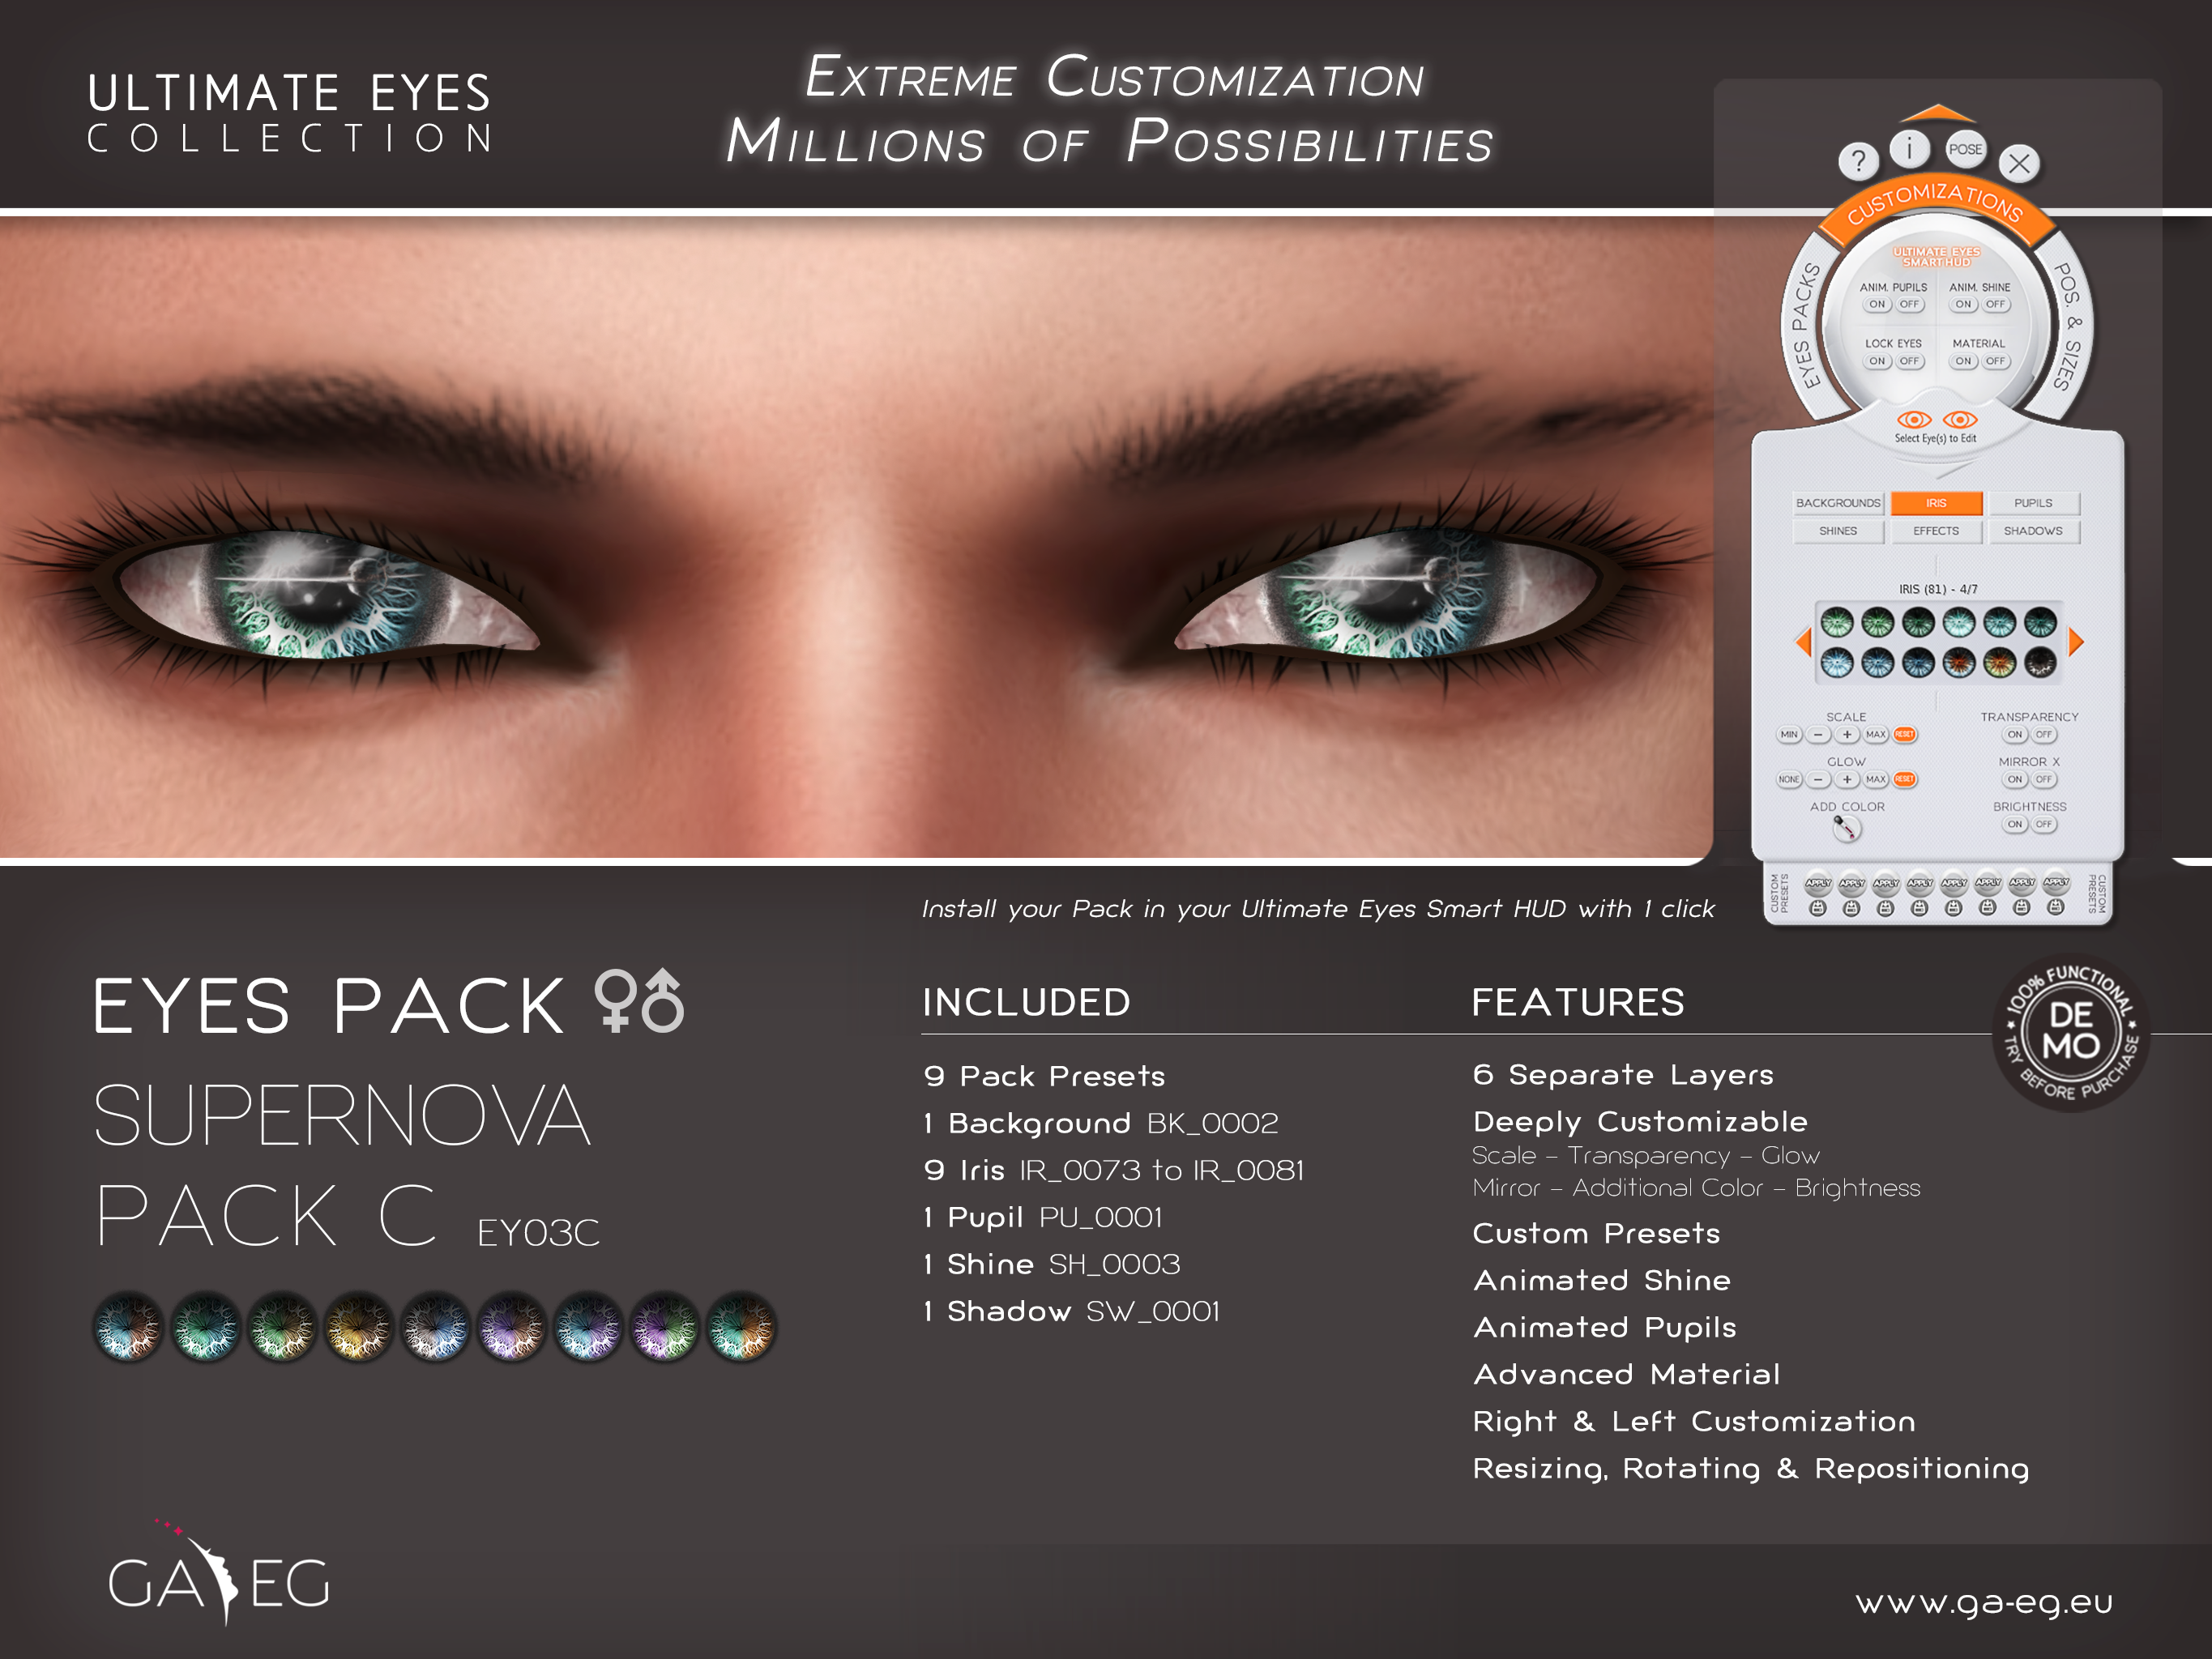 Ultimate Eyes Pack - EY03C Supernova Pack C